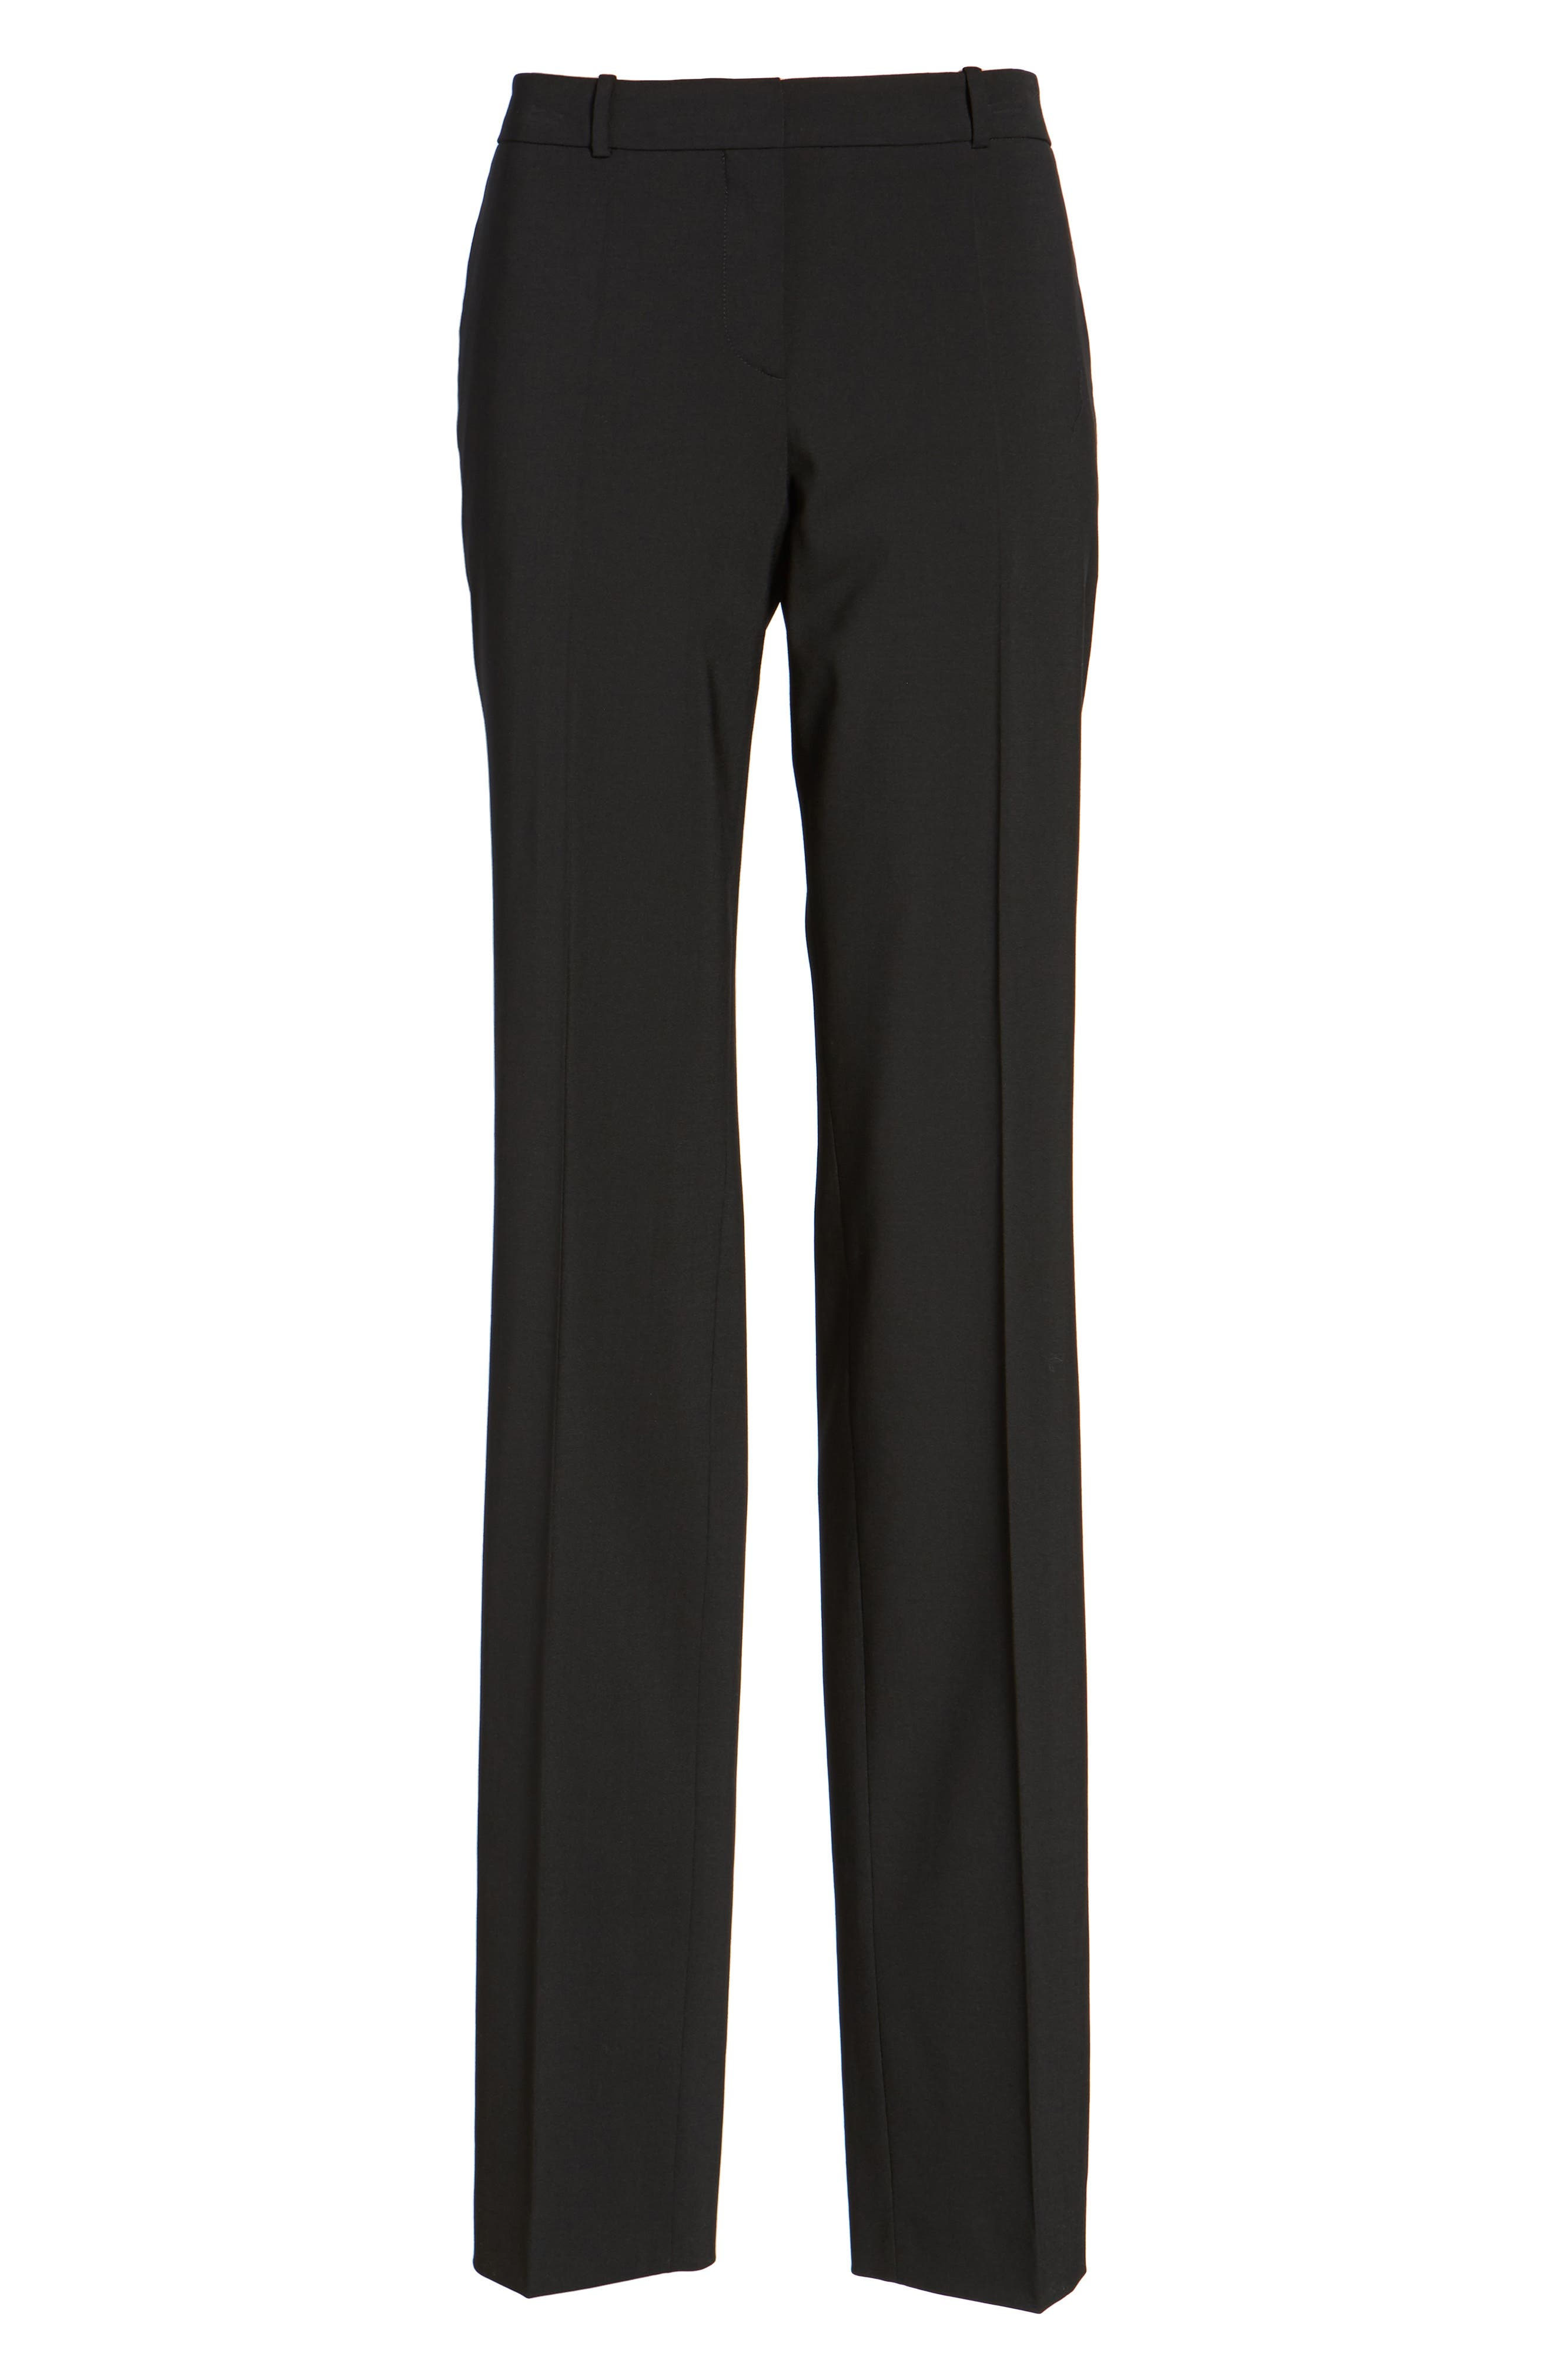 Tamea Tropical Stretch Wool Trousers,                             Alternate thumbnail 7, color,                             BLACK